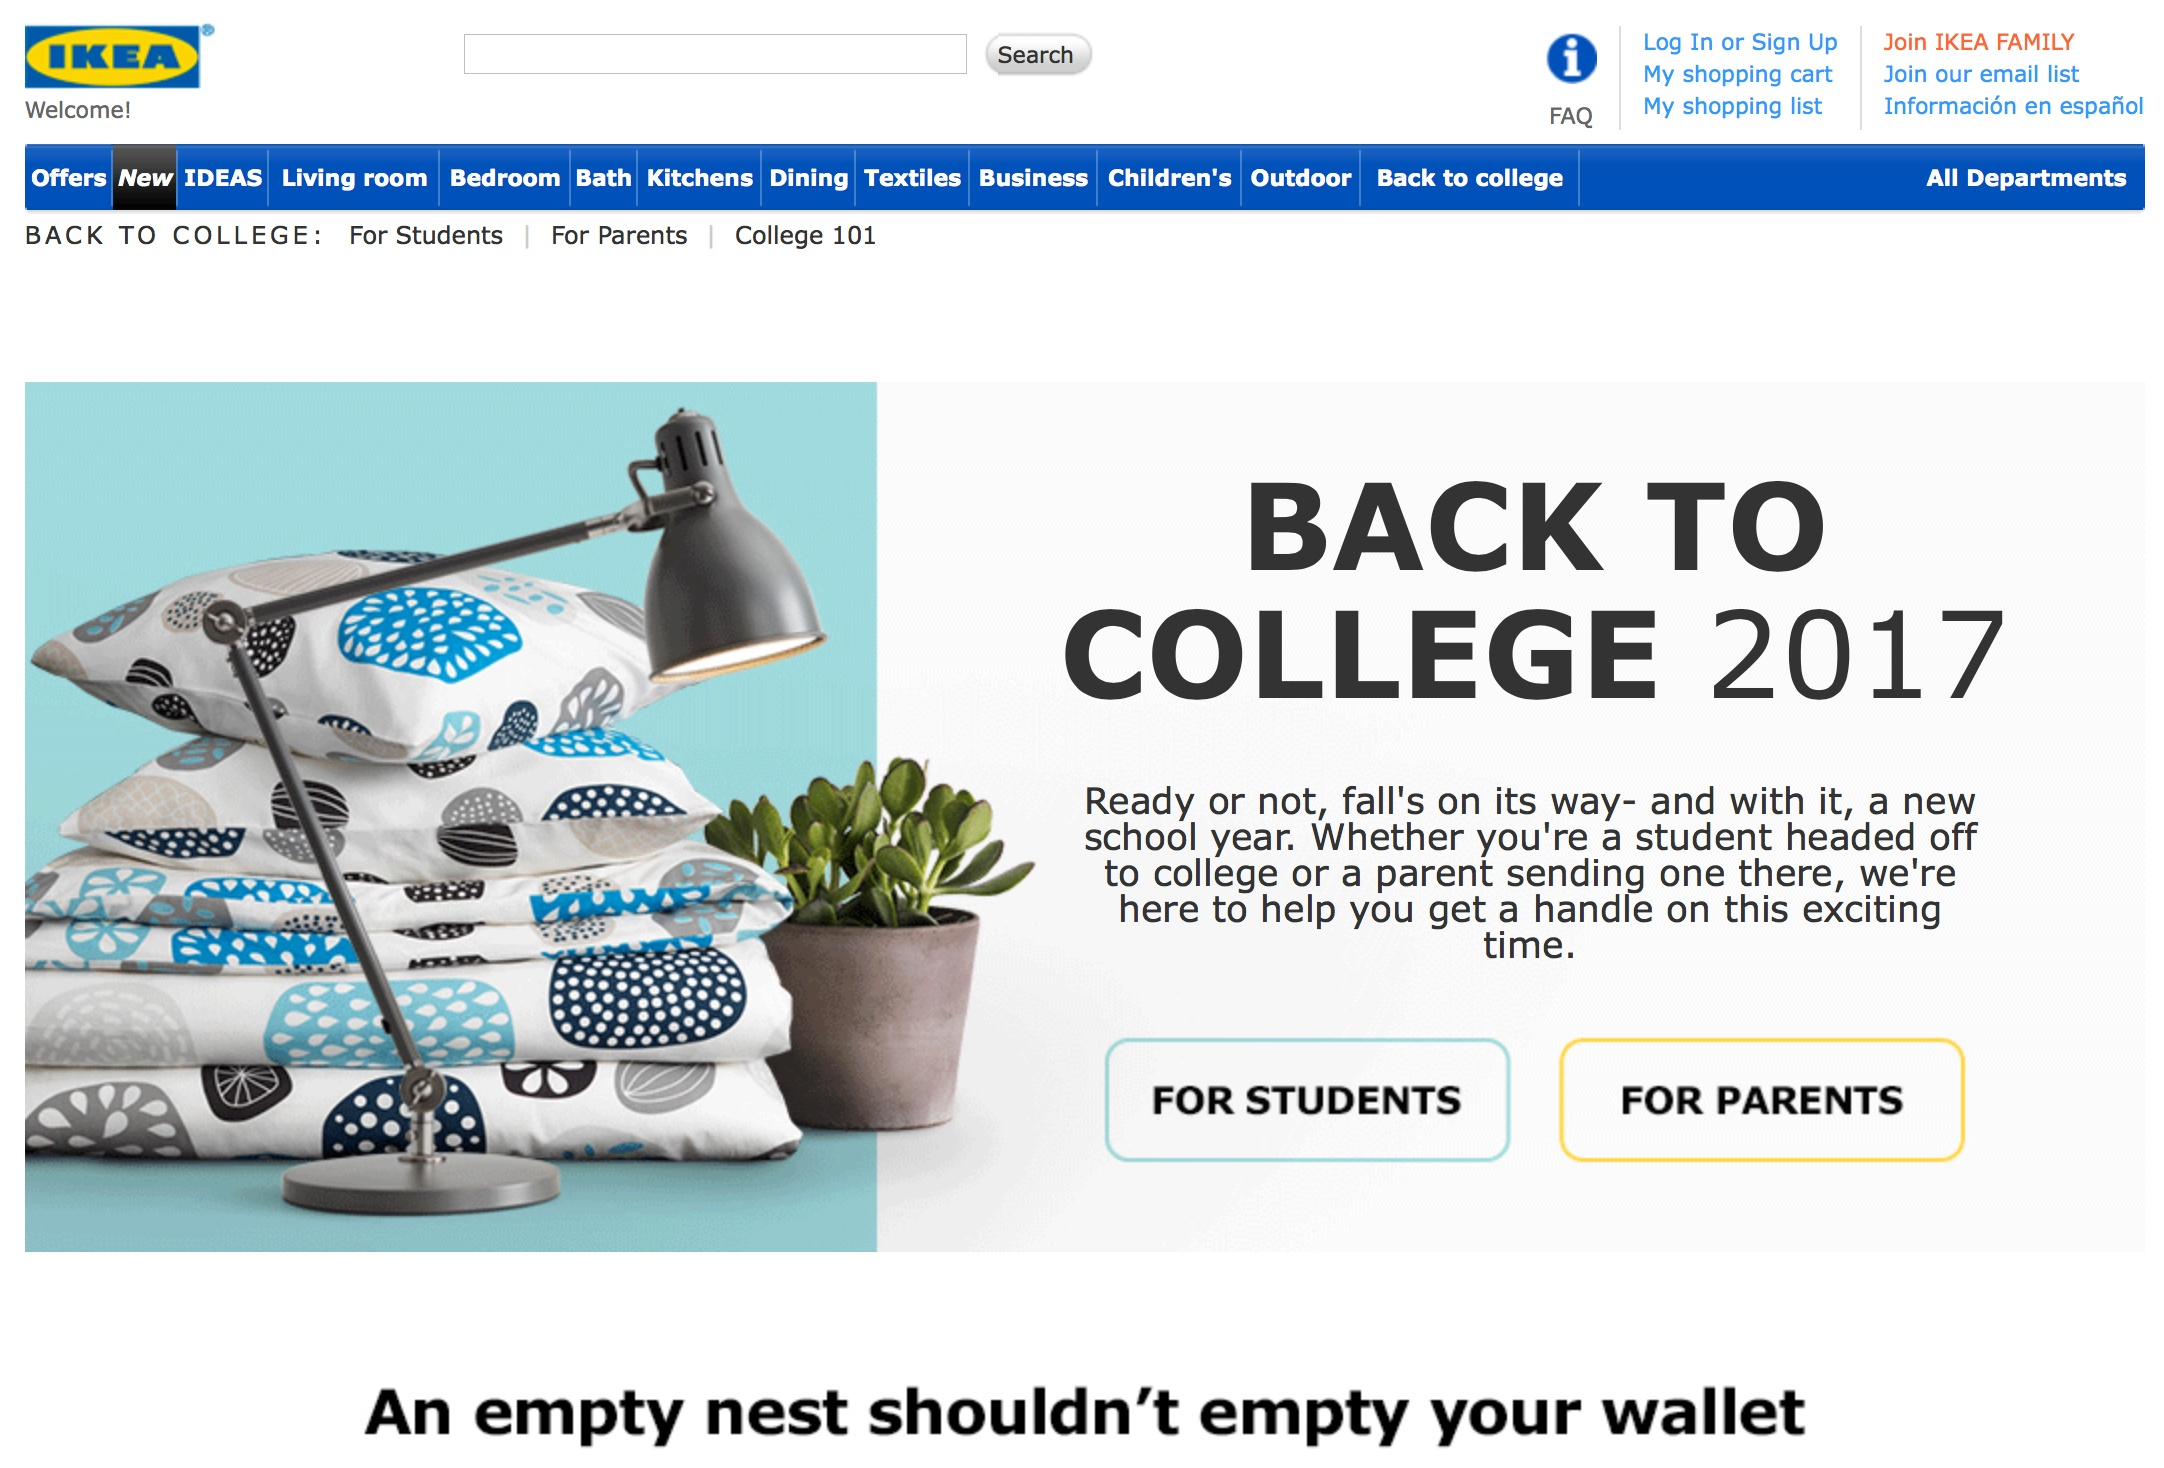 IKEA Back To College 2017 Microsite Includes Great Content For Both Students And Parents